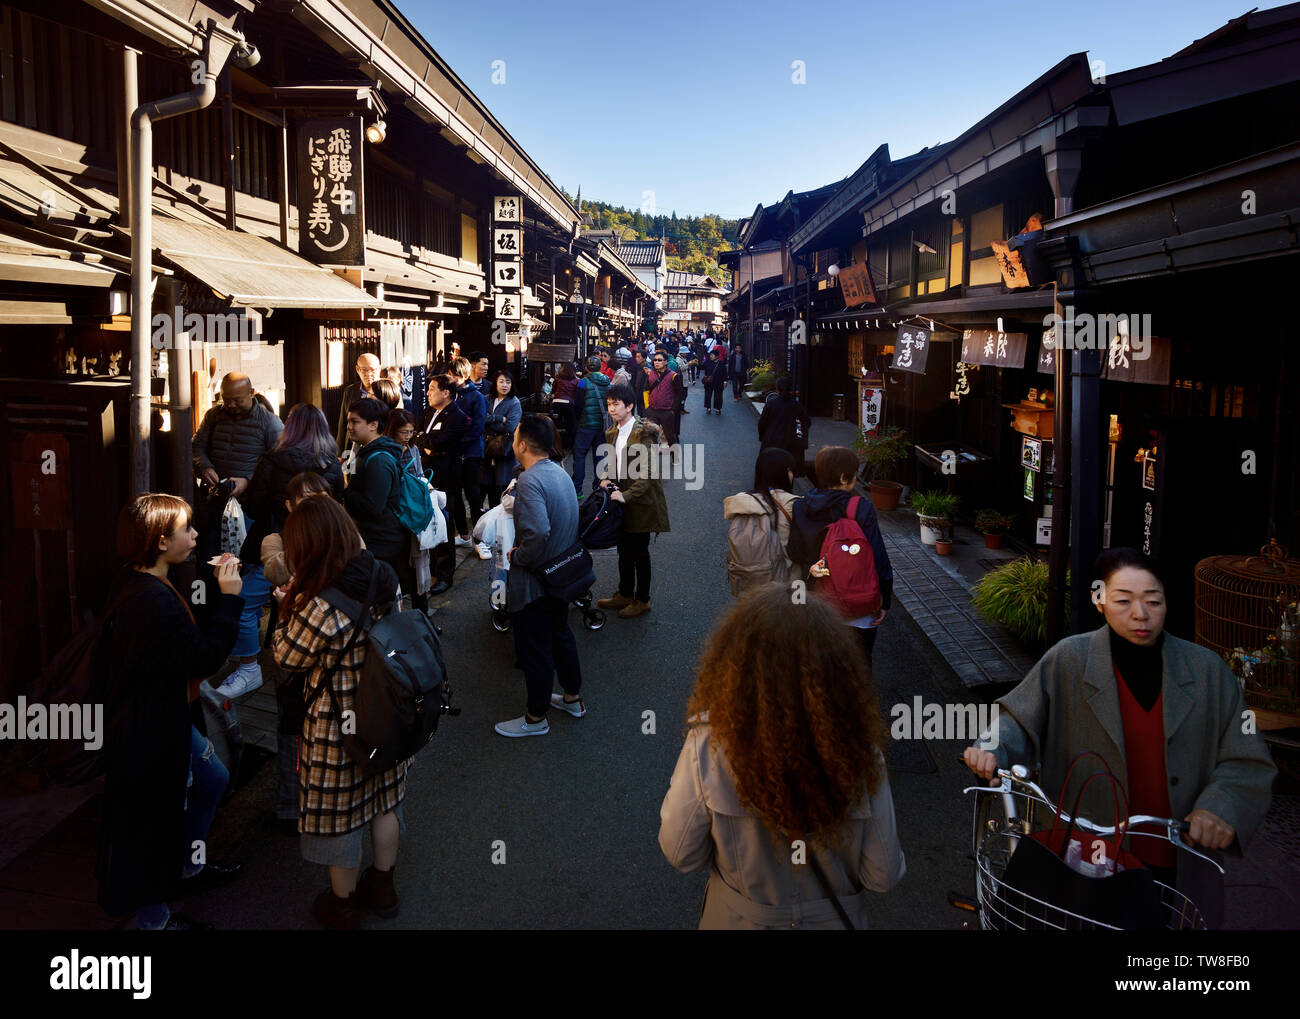 Kami-Sannomachi, old town market street of Takayama city busy with tourists. Kamisannomachi is a merchant town street lined with shops and restaurants - Stock Image